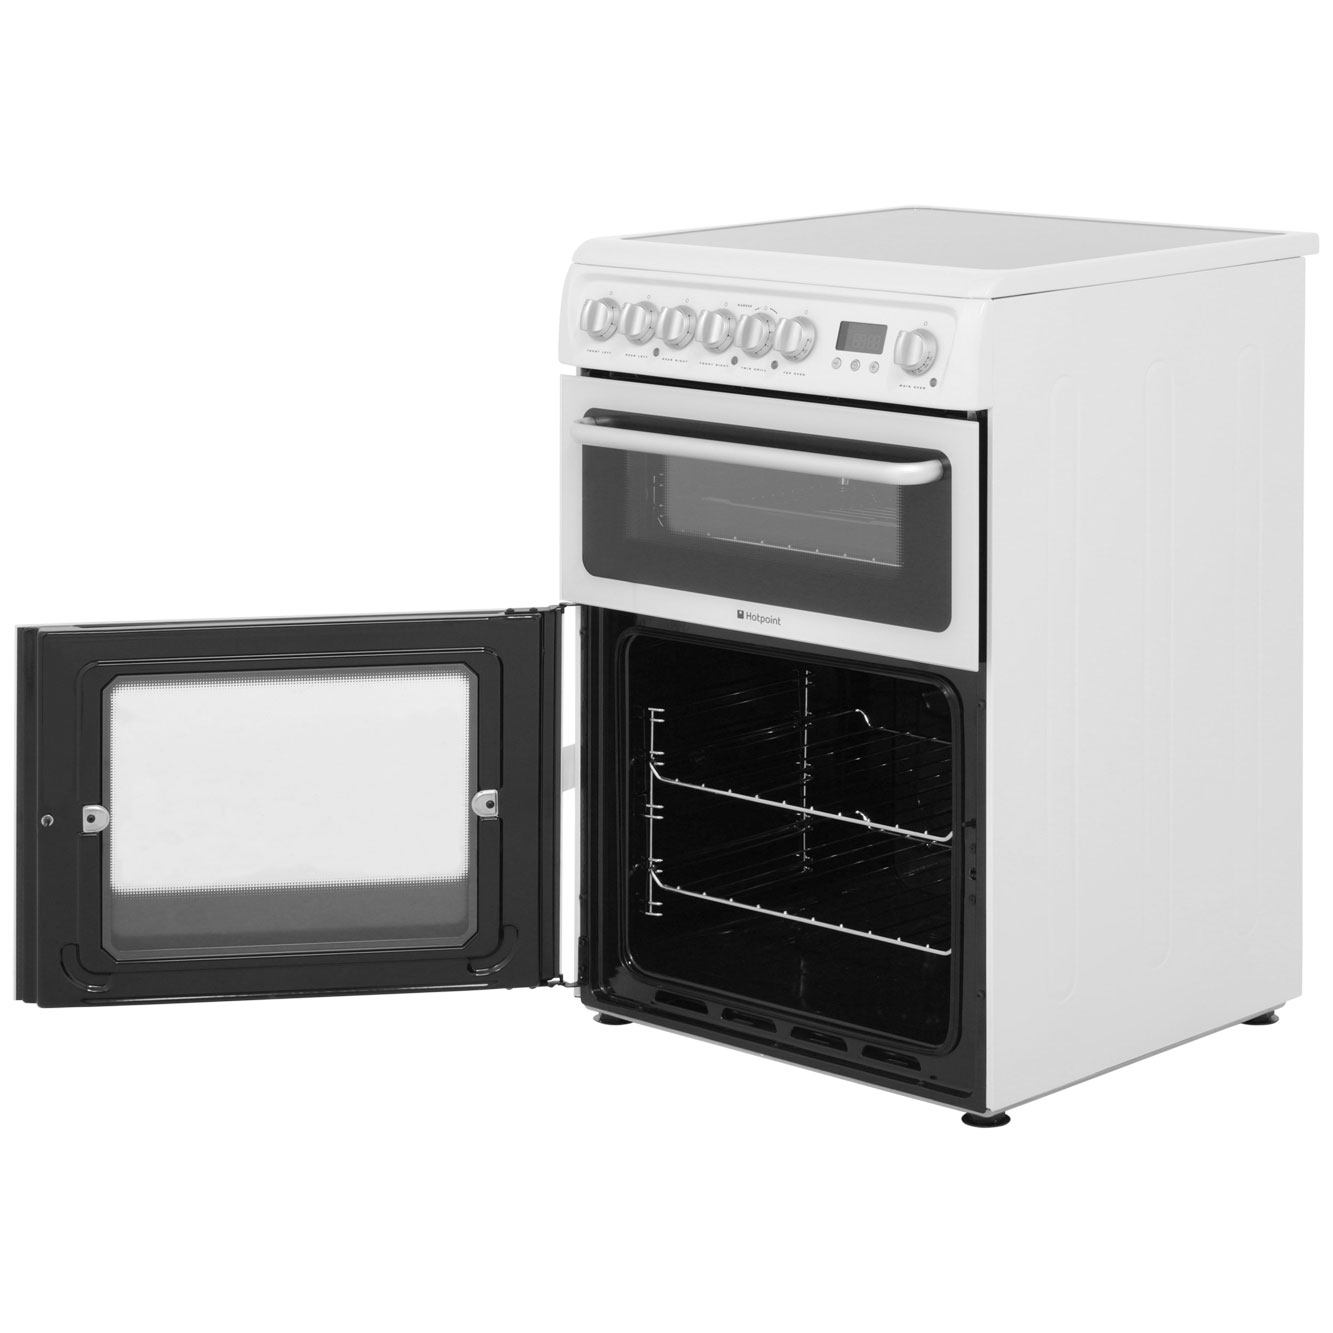 Hare60p Wh Hotpoint Electric Cooker White Vehicle Supply Equipment On Oven Without Hard Wiring